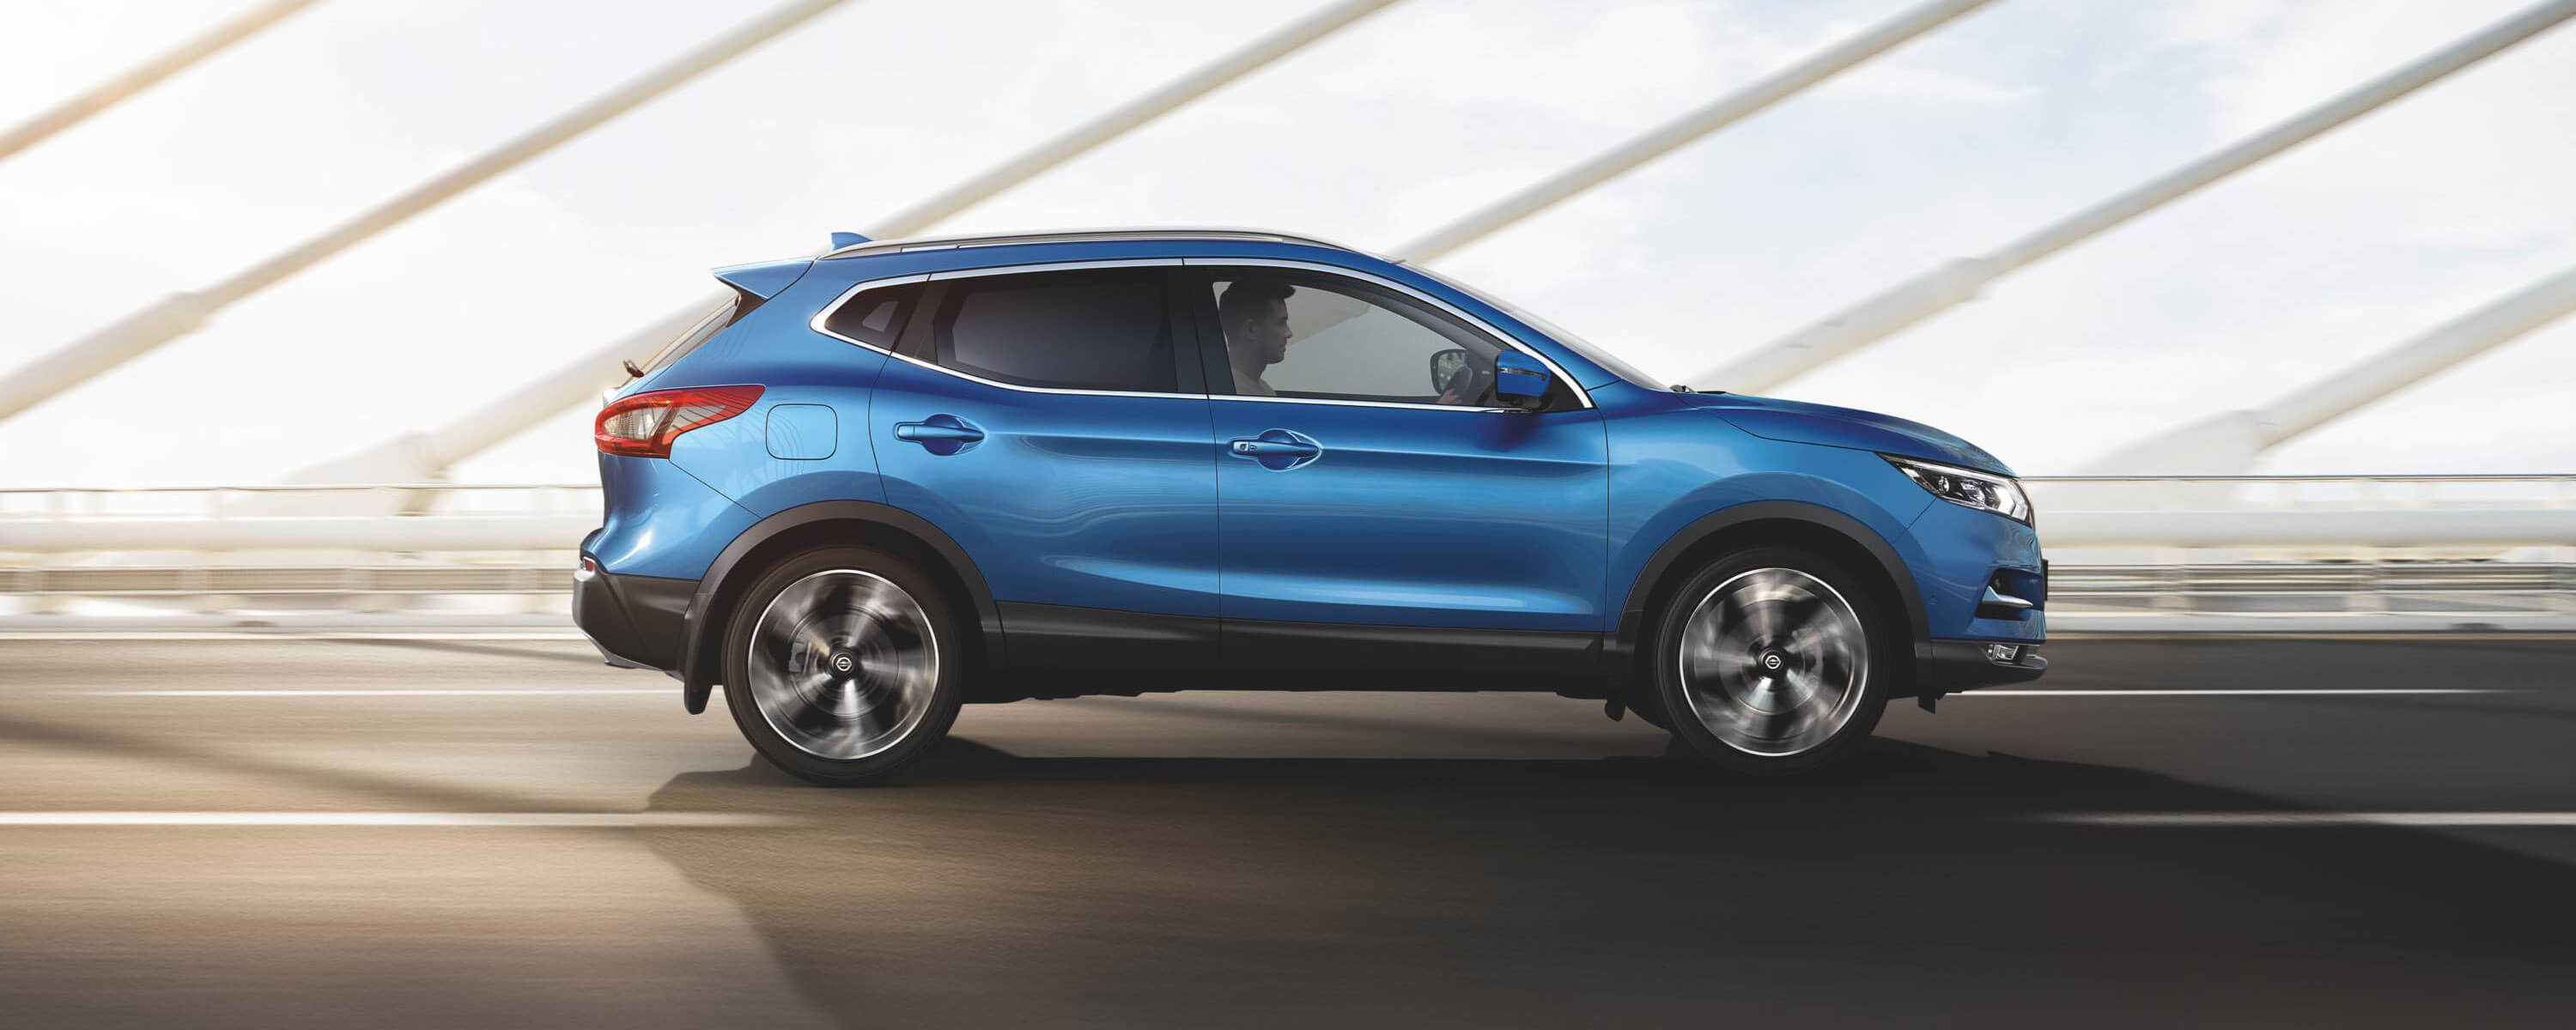 QASHQAI Sleek looks, smart design